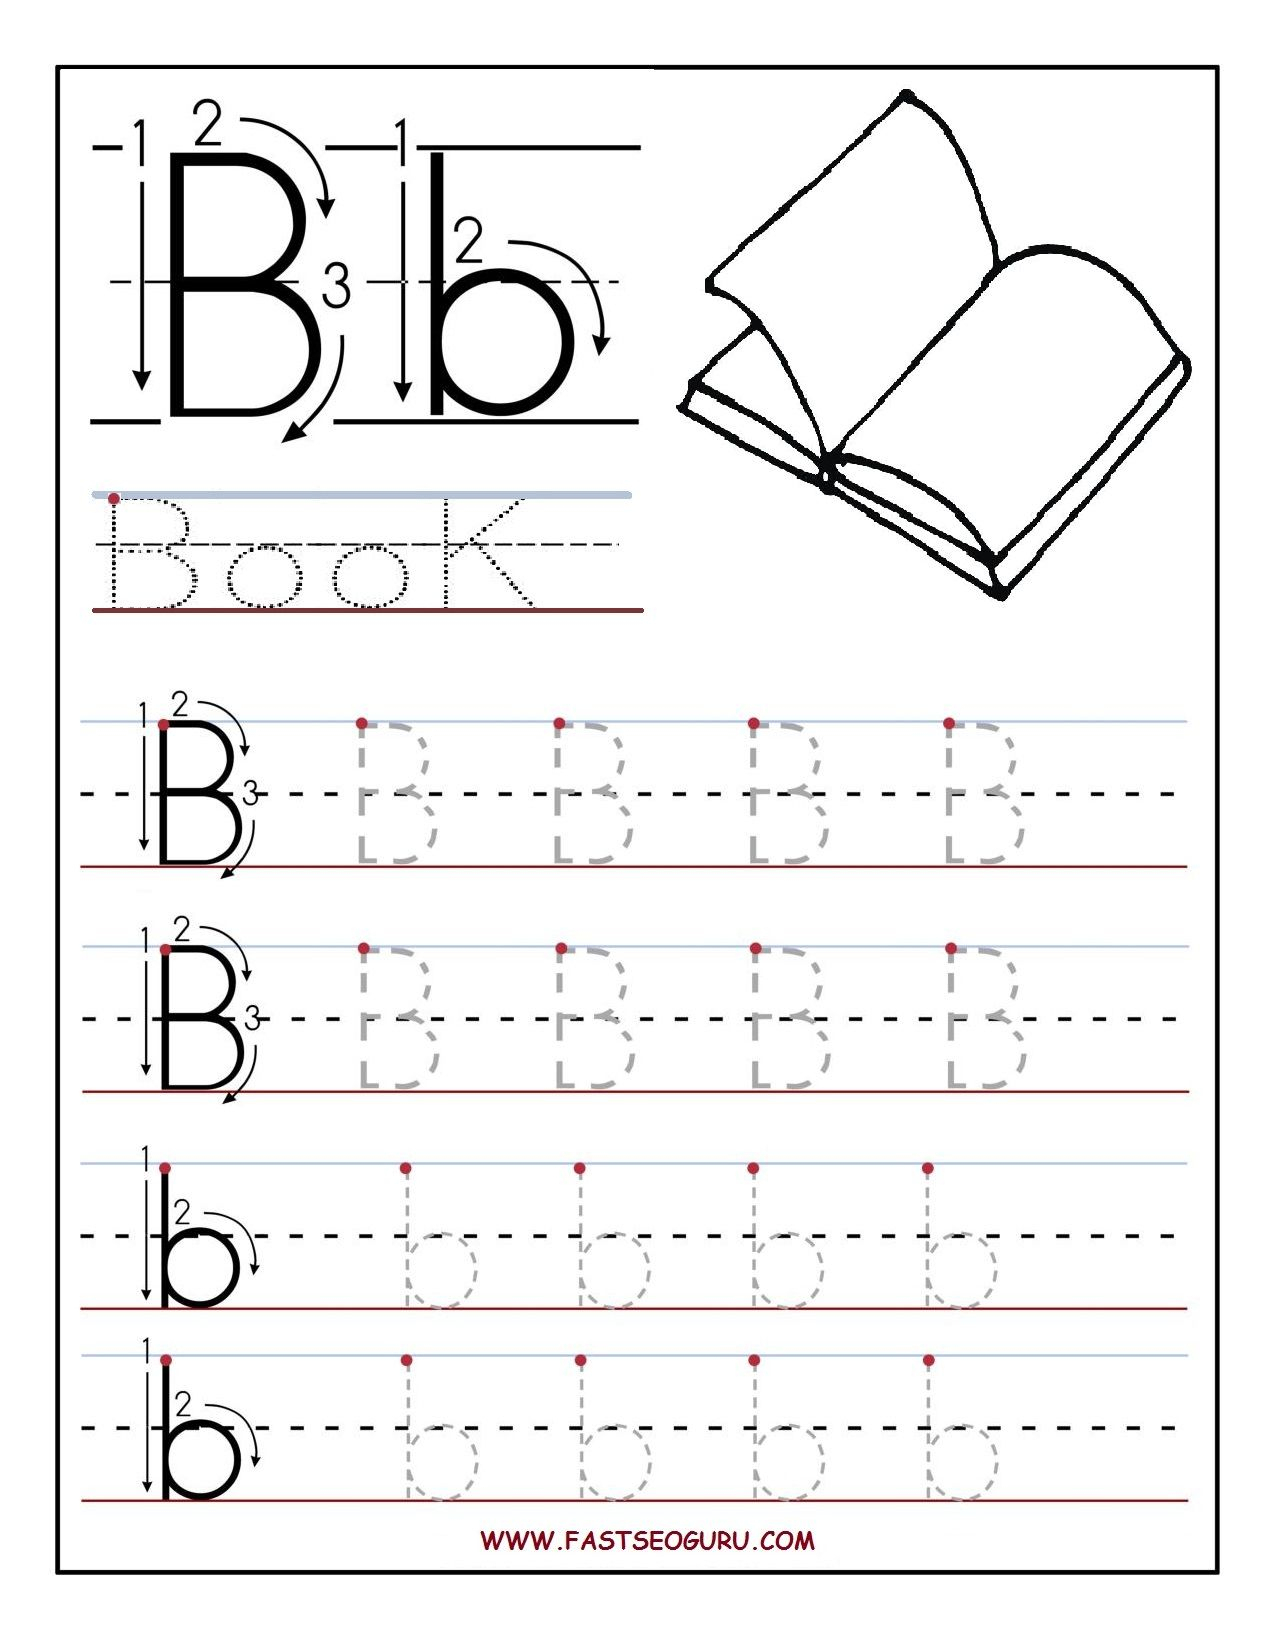 Printable Letter B Tracing Worksheets For Preschool | Letter Bb - Free Printable Traceable Letters